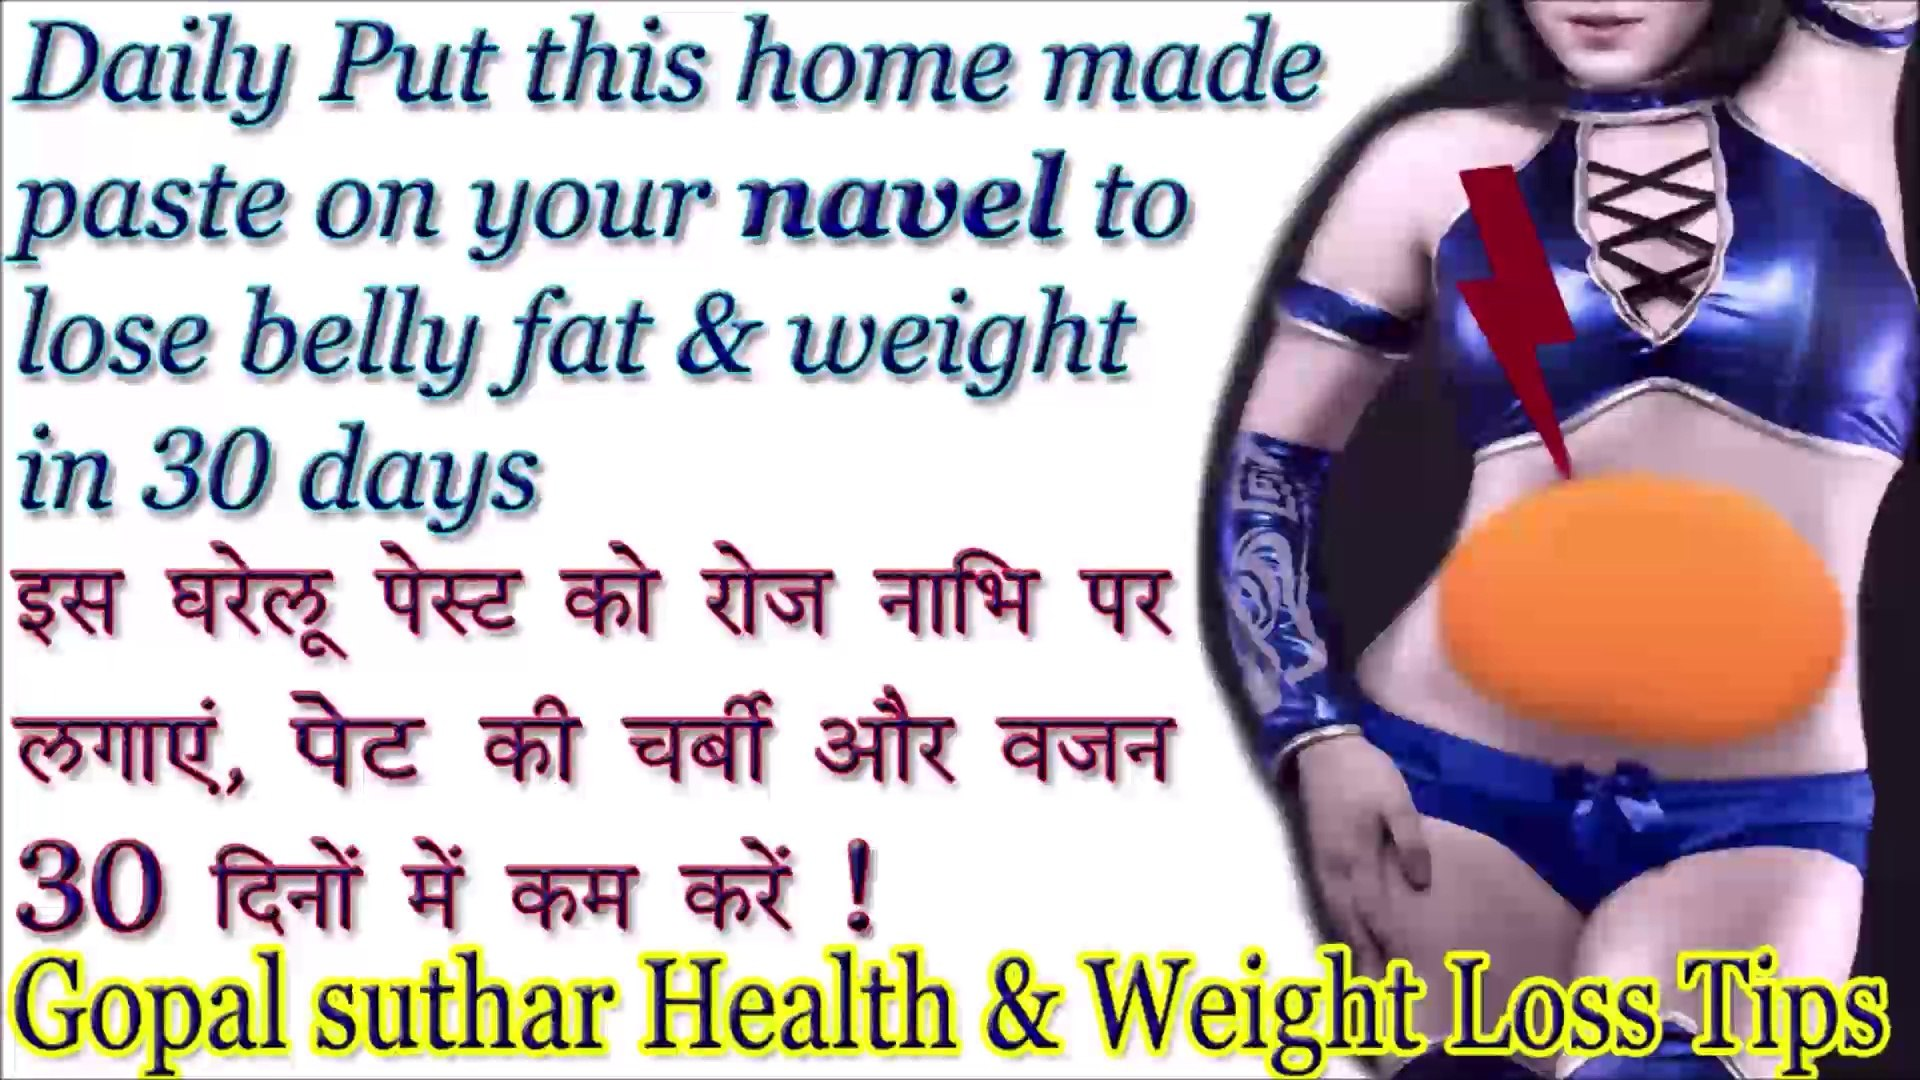 Put Homemade Ayurveda Paste Daily on your Navel to Lose Belly fat & Weight in 30 Days | 30 days